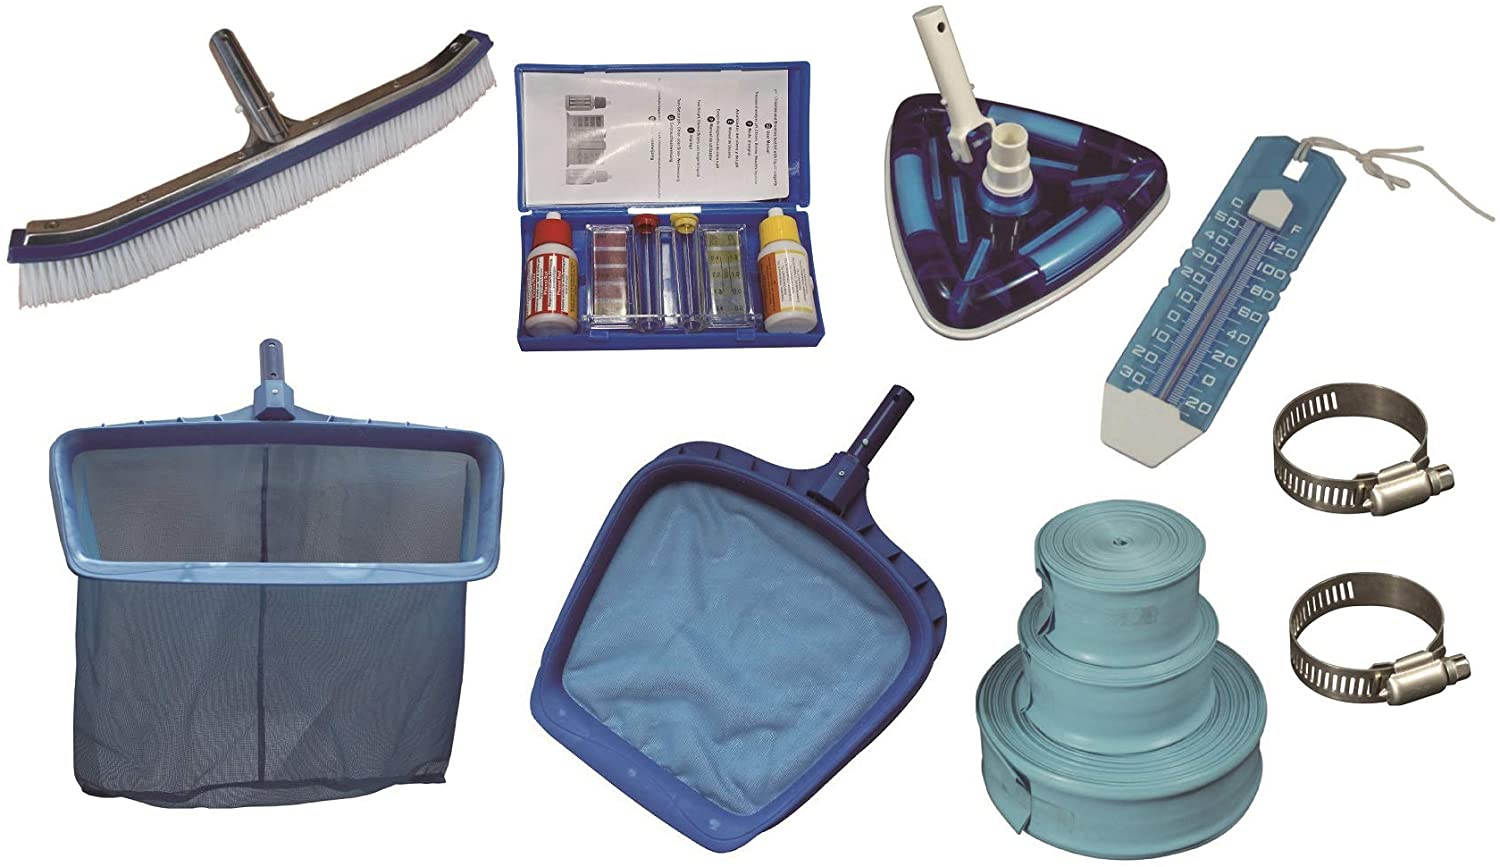 Accessory pack products